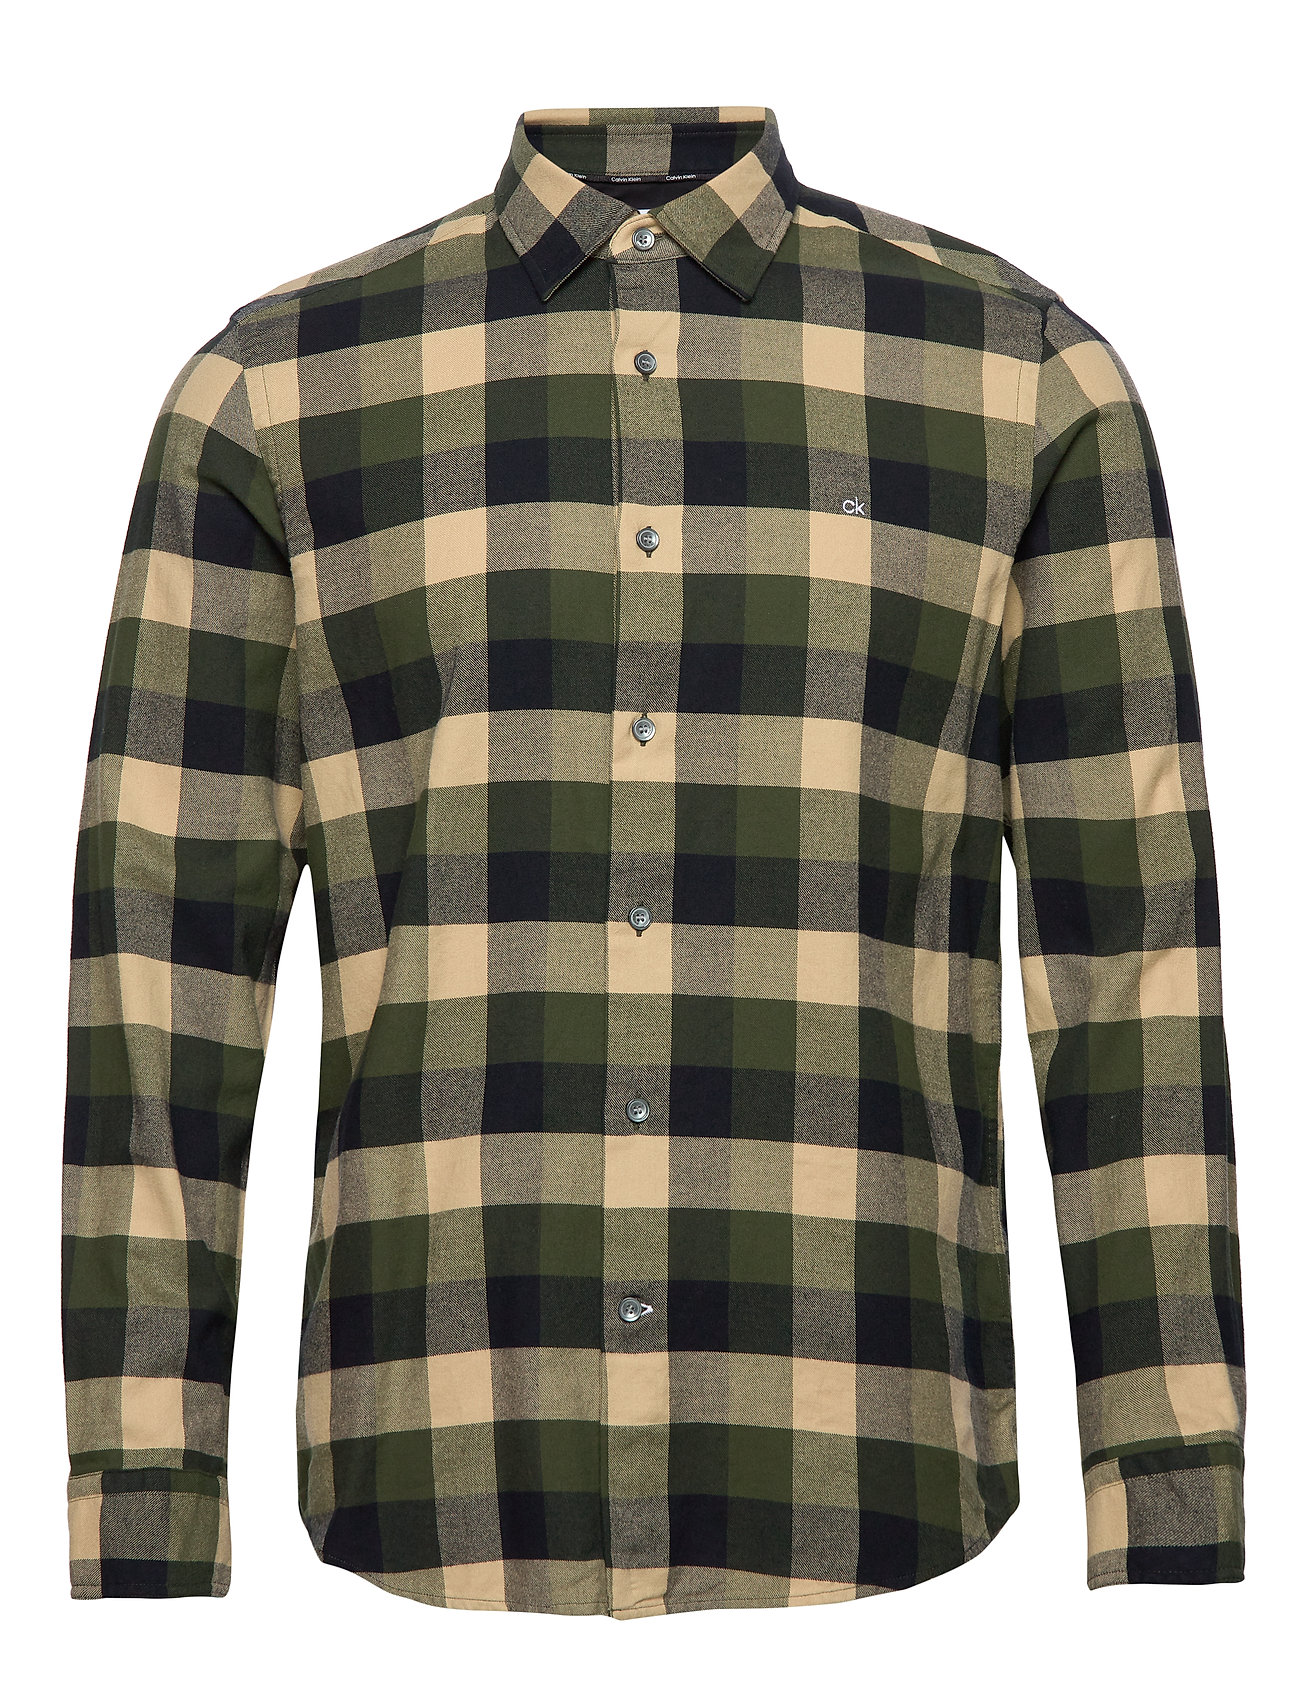 Calvin Klein BRUSHED TWILL CHECK SHIRT - BLOCK CHECK - BLACK / OLIVE /